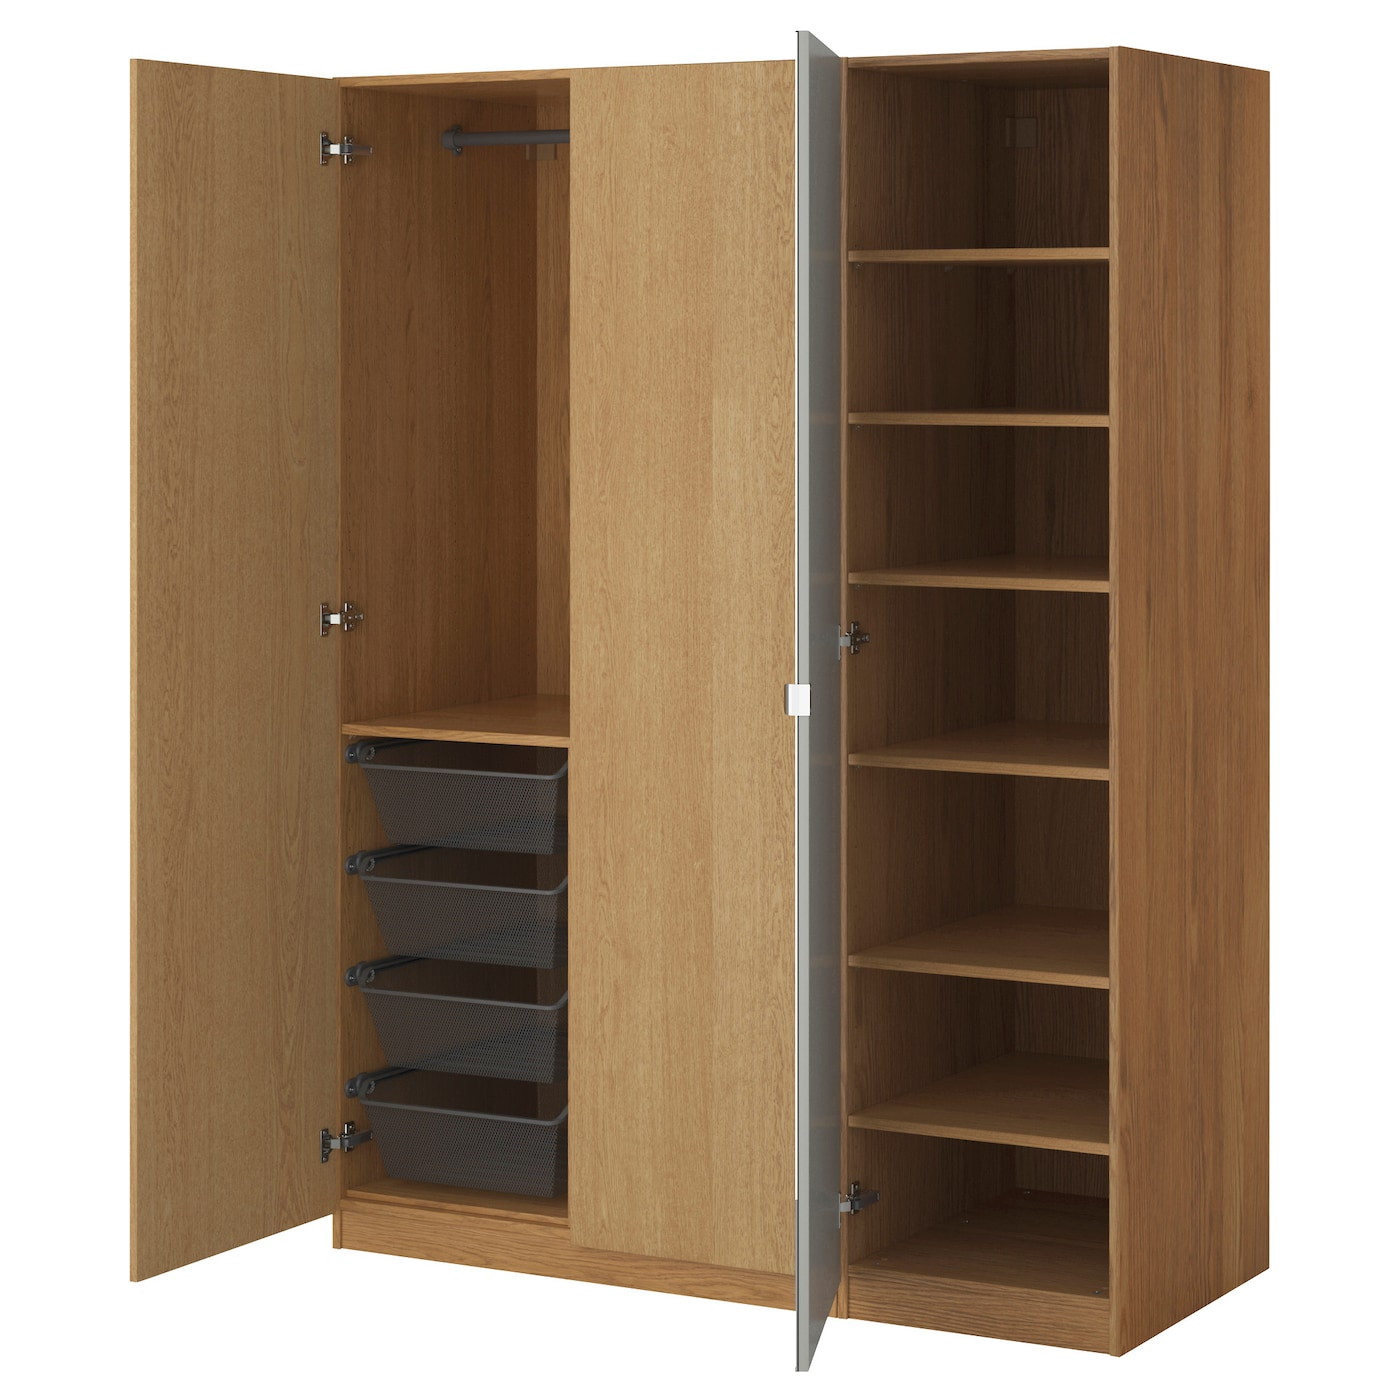 design storage captivating ideas corner system white furniture closet clothes oak ikea organizing with and featuring wardrobe wooden home racks hanging compact for portable also easy shoes pax open shelves fabulous